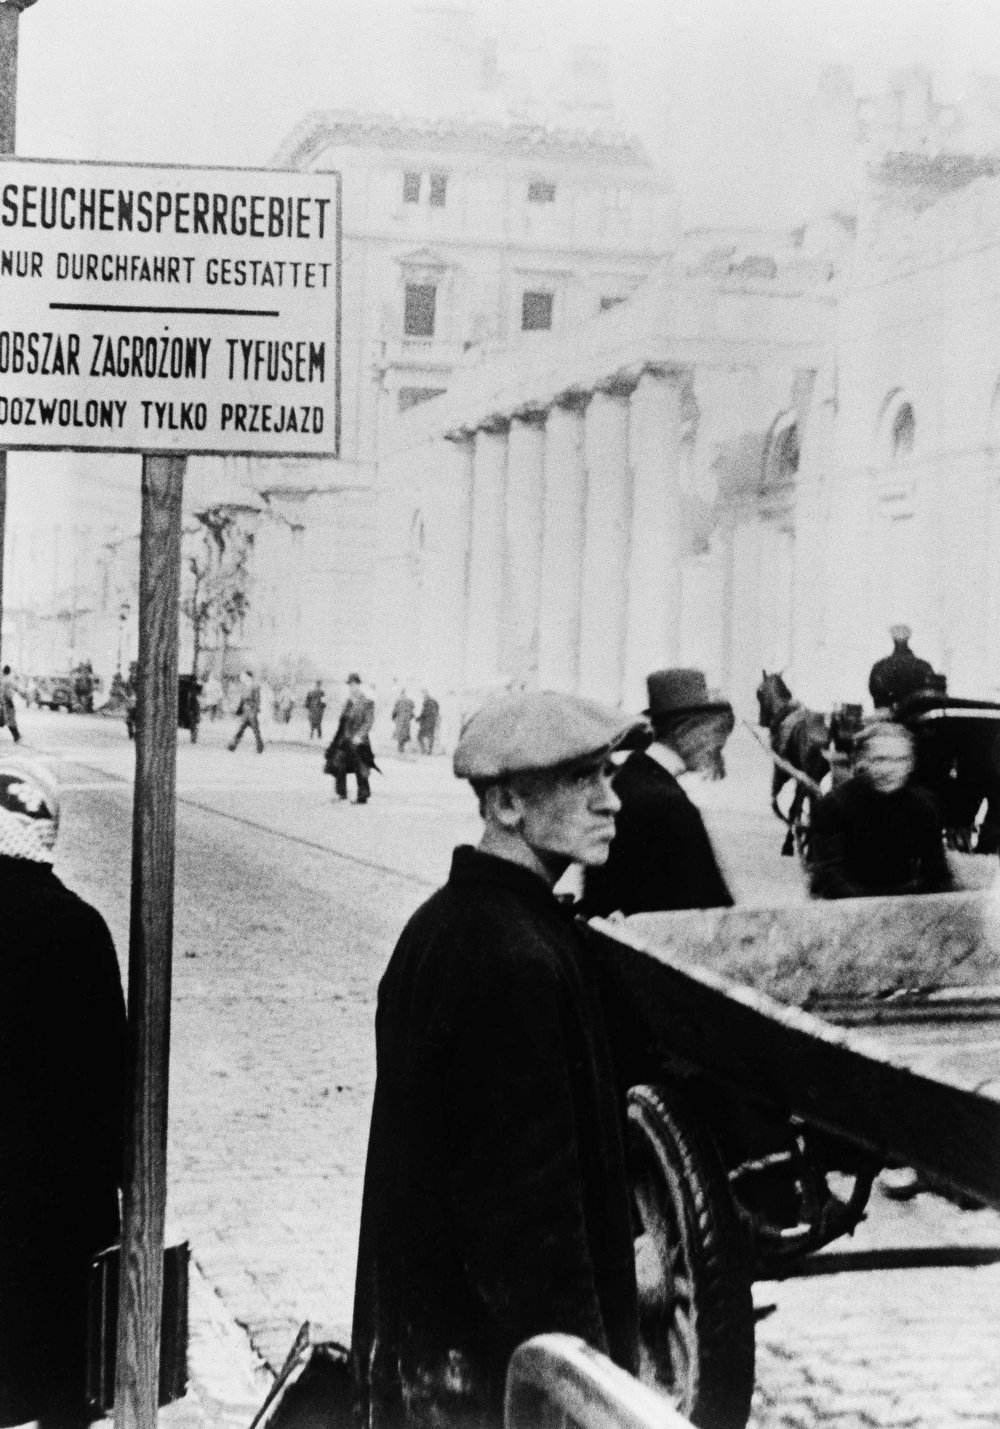 """. Sign at the entrance to the Jewish Ghetto in Warsaw Plague reads: \""""Barred section only through fare permitted\"""", Feb. 10, 1941, Warsaw, Poland.  (AP Photo)"""